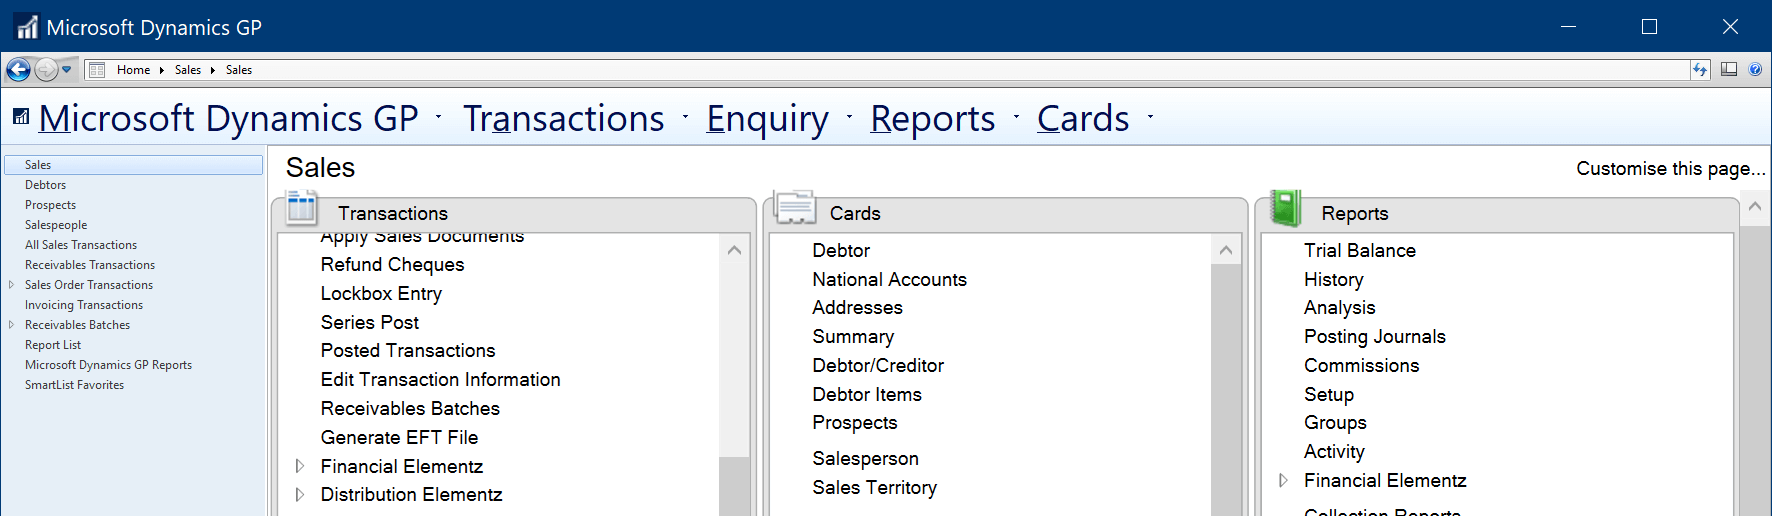 Dynamics GP with text showing too large